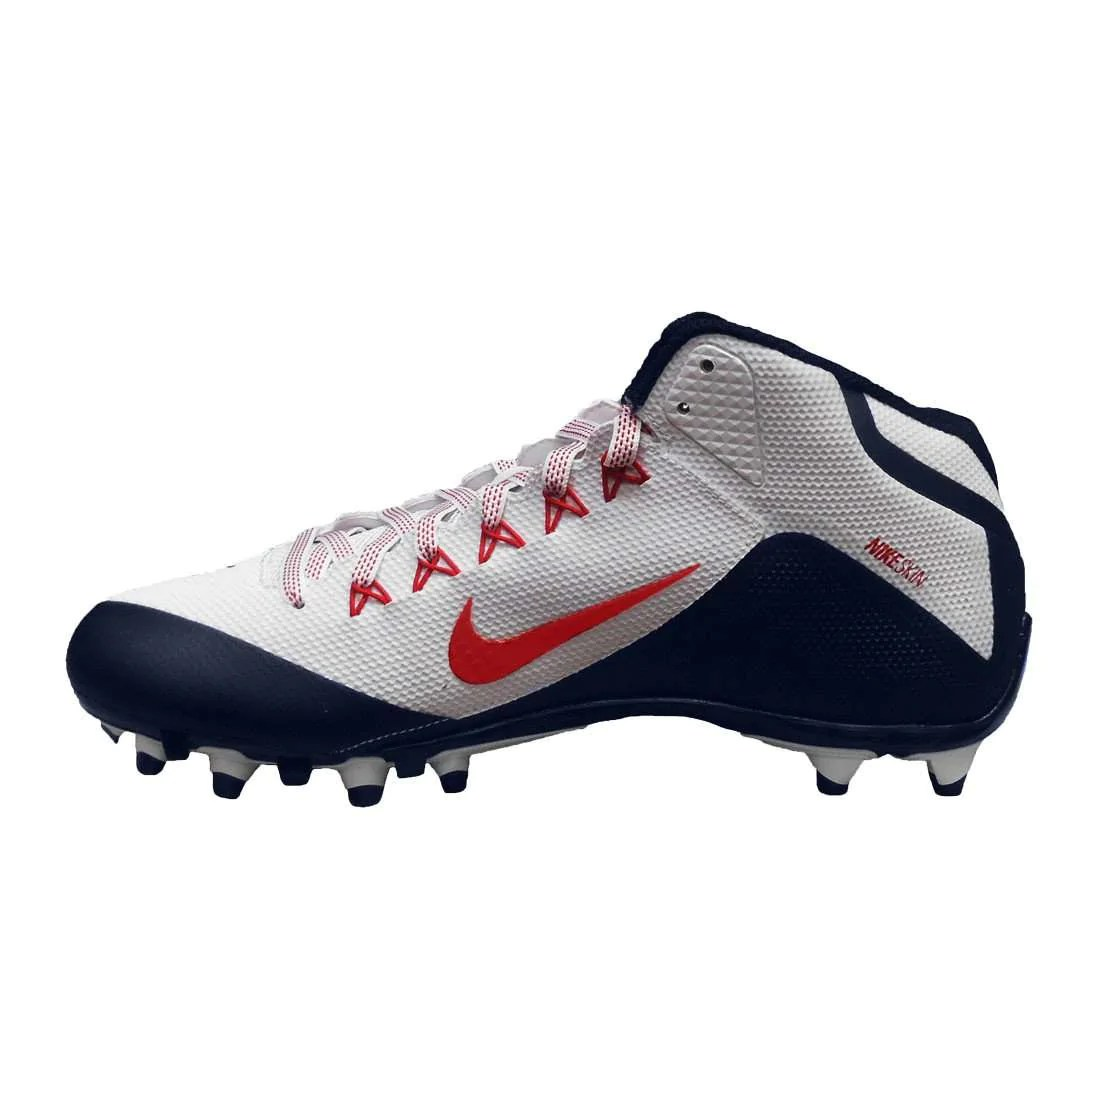 9c8e80b01c35 20+ Nike Youth Football Cleats Red Pictures and Ideas on STEM ...